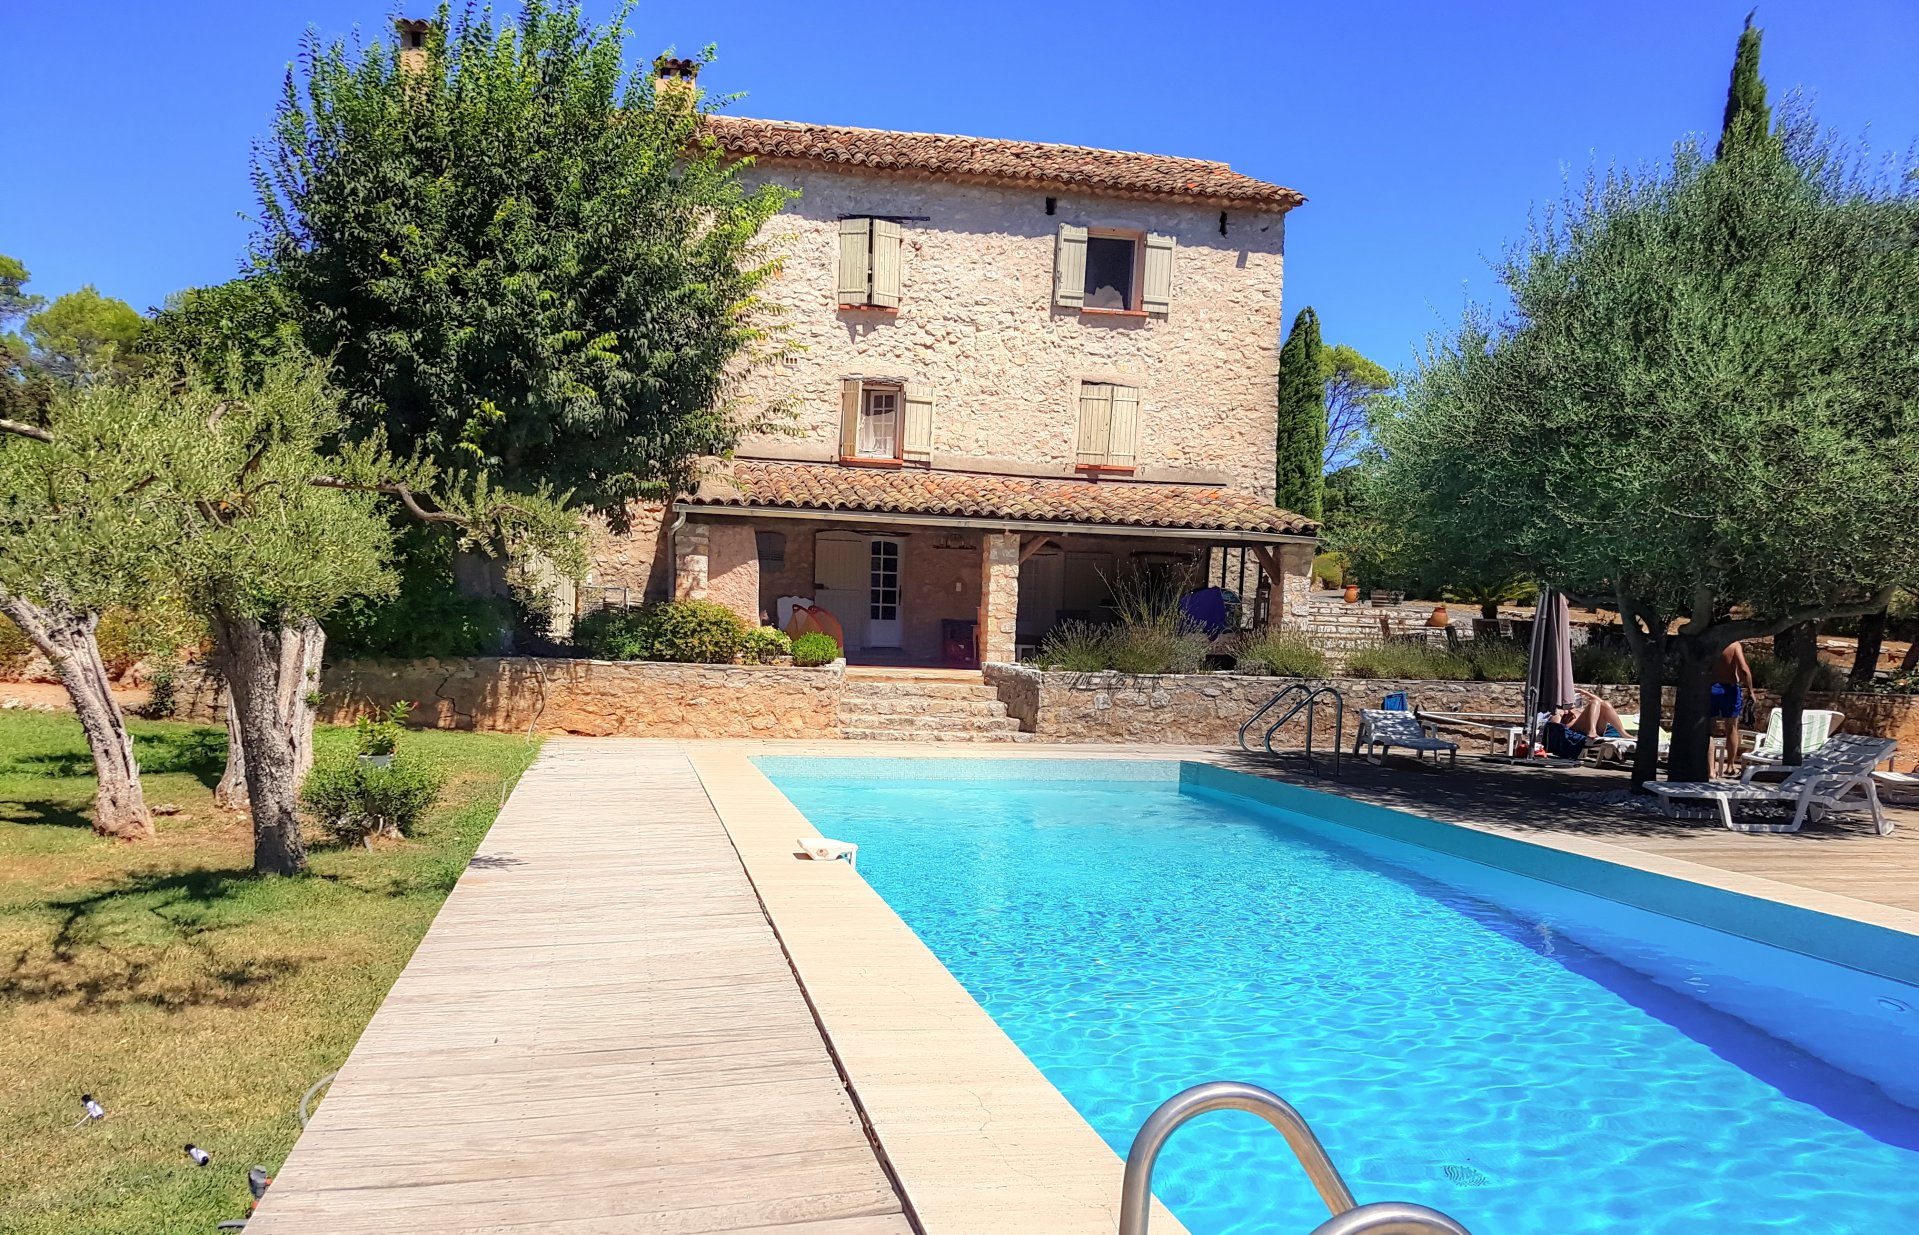 Exceptionnal Stone Provencal Bastide on 6 hectares